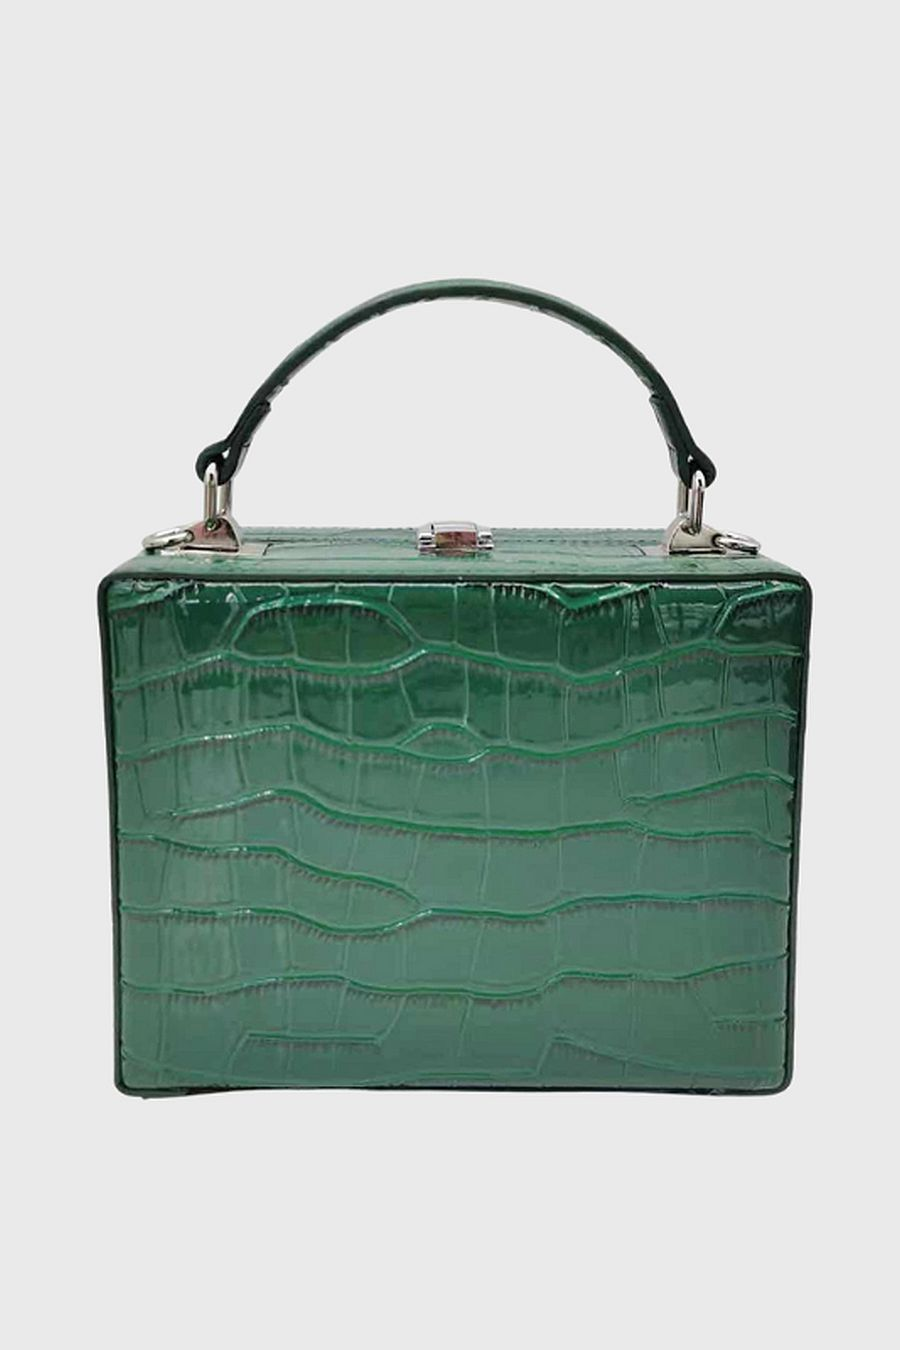 Brandon Blackwood Kendrick Trunk - Forest Green Croc